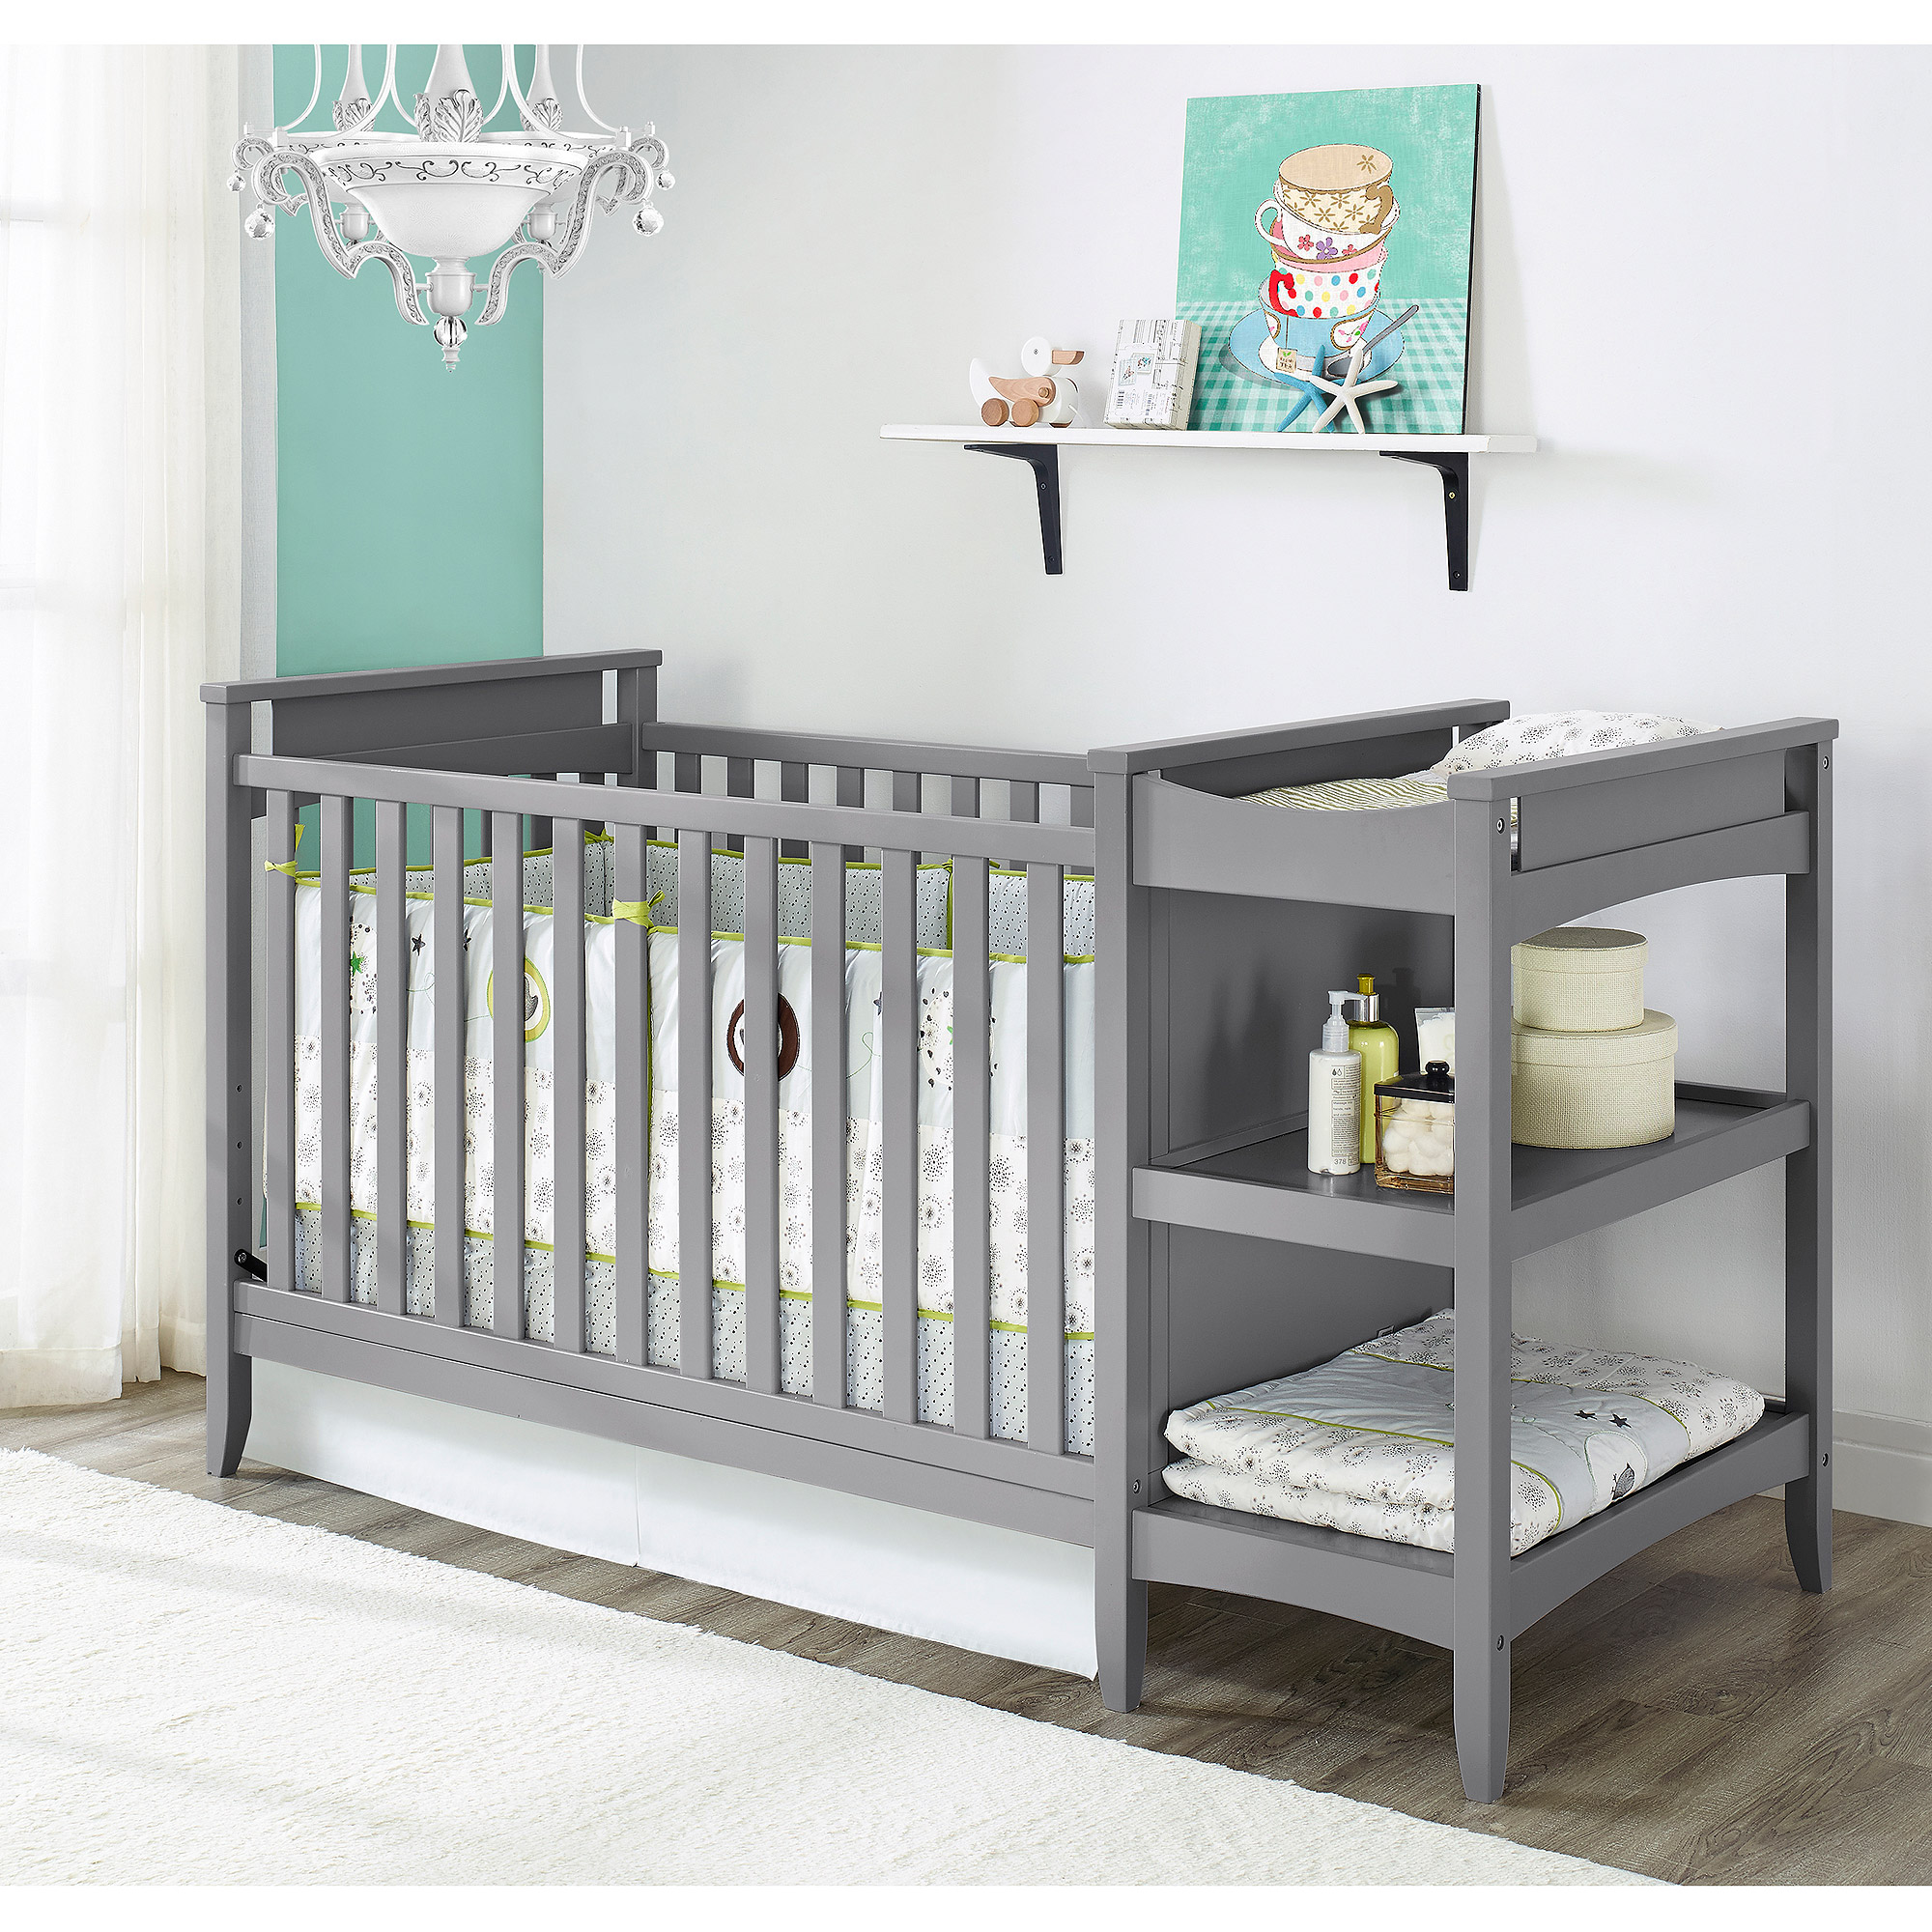 baby crib mattress walmart sealy ortho rest crib mattress  - baby relax emma in crib n changer combo gray